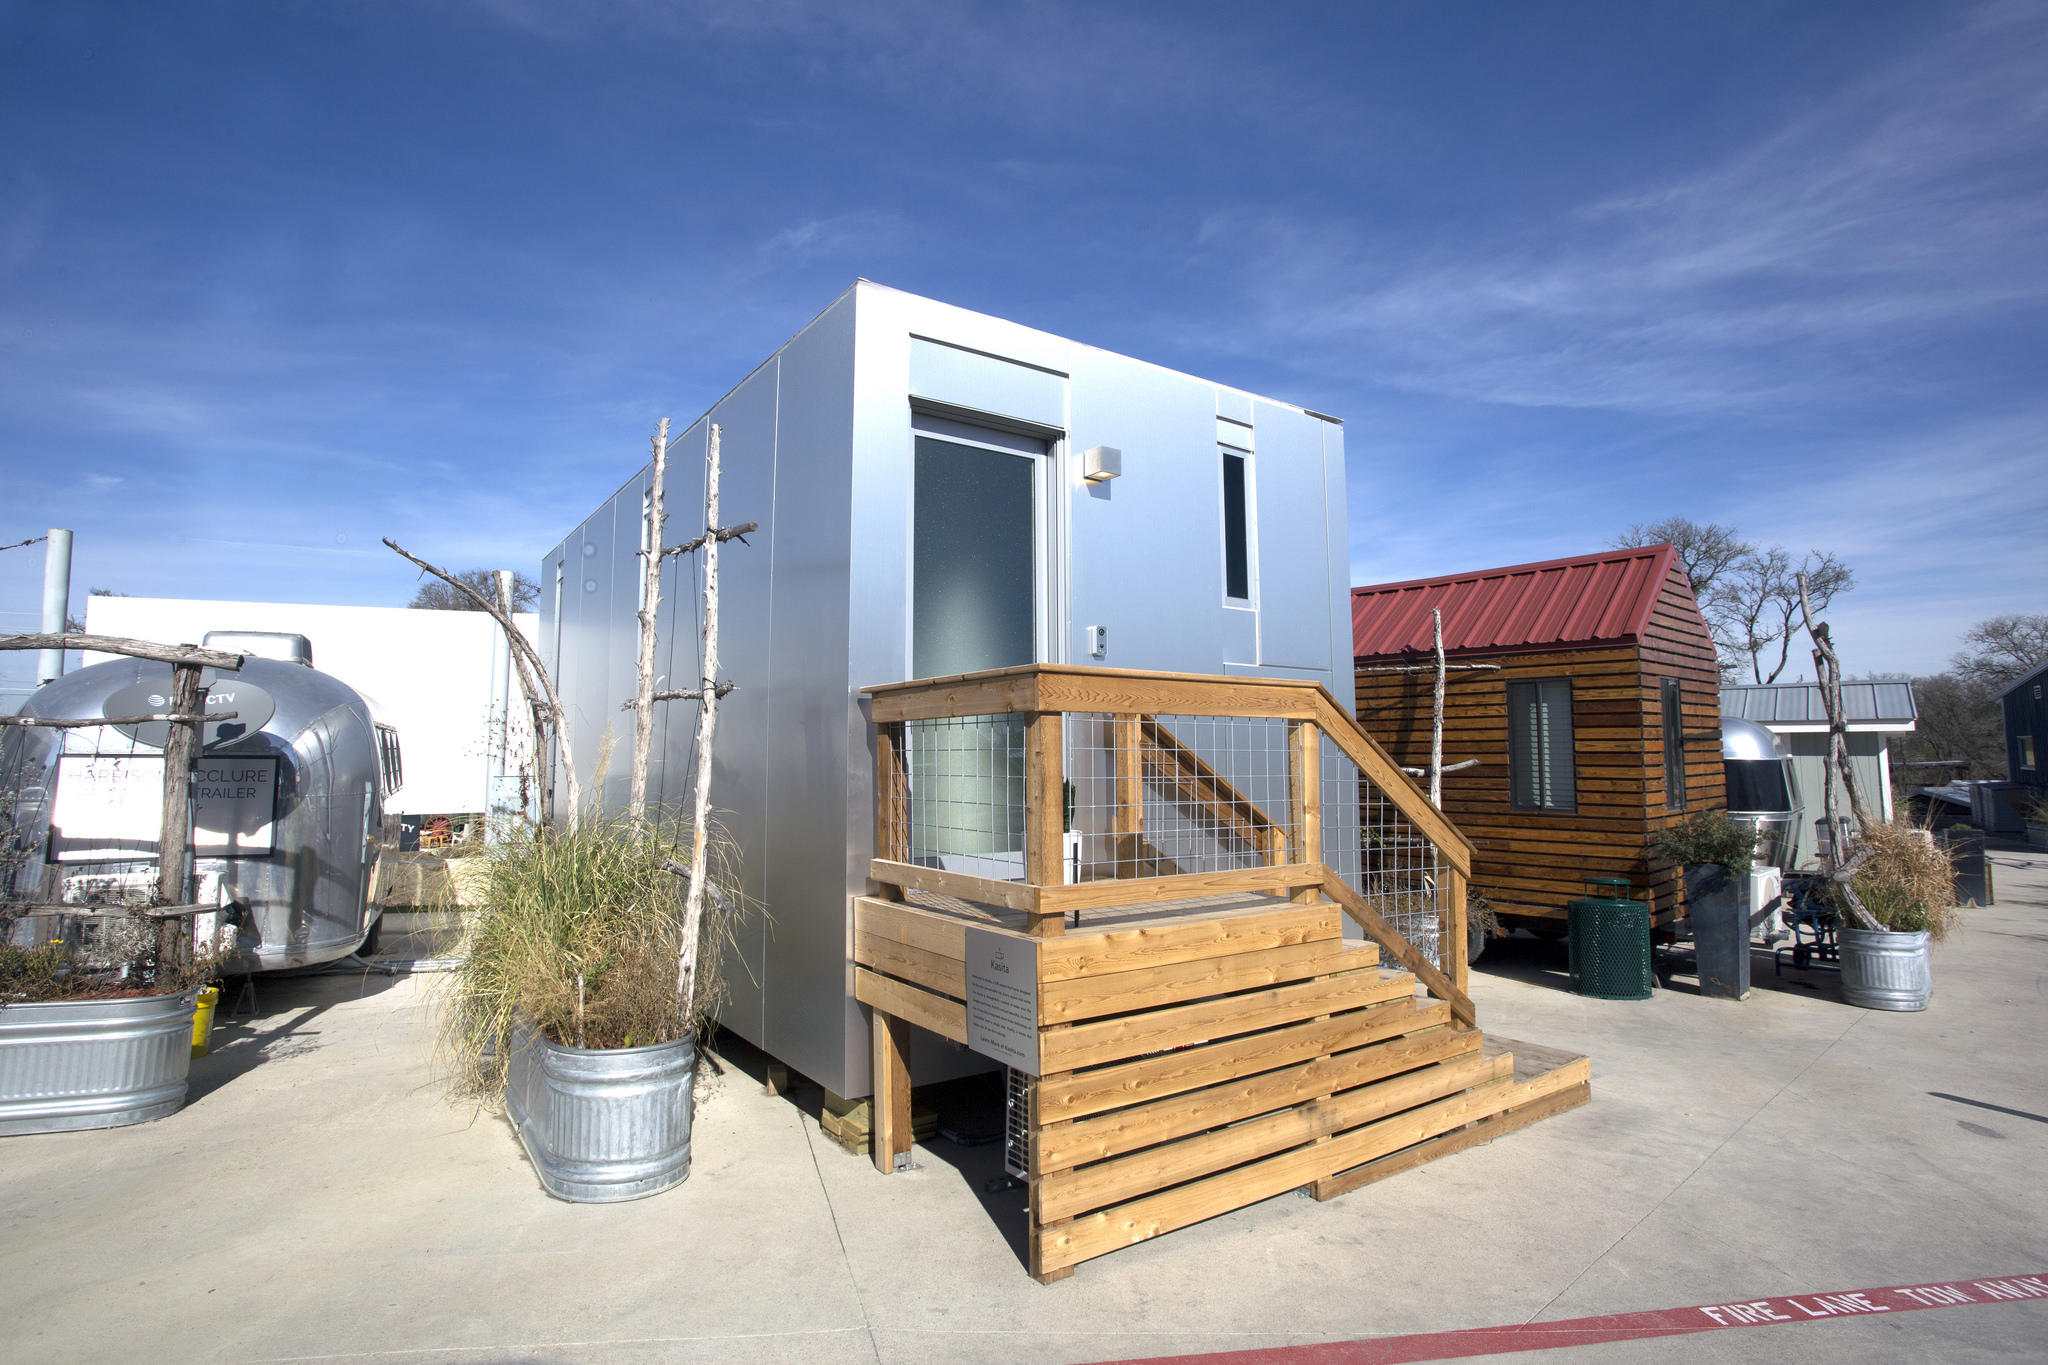 tiny house community austin. A Model Kasita Home At The Community First! Village In East Austin. Tiny House Austin